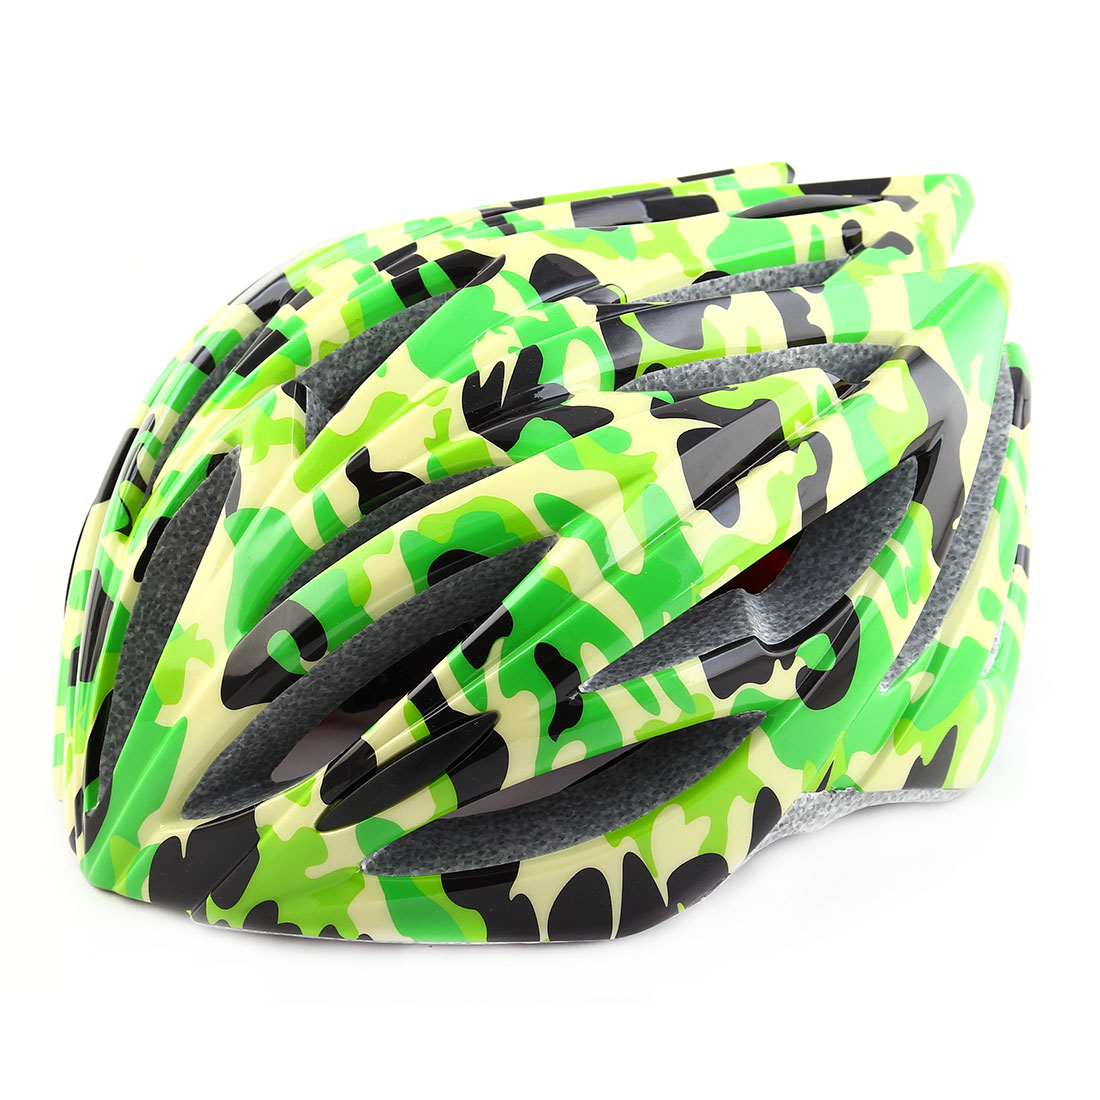 Patent Authorized PC Shell 21 Holes Cycling Cap Head Safety Protector Bicycle Hat Adjustable Cycling Bike Helmet Green